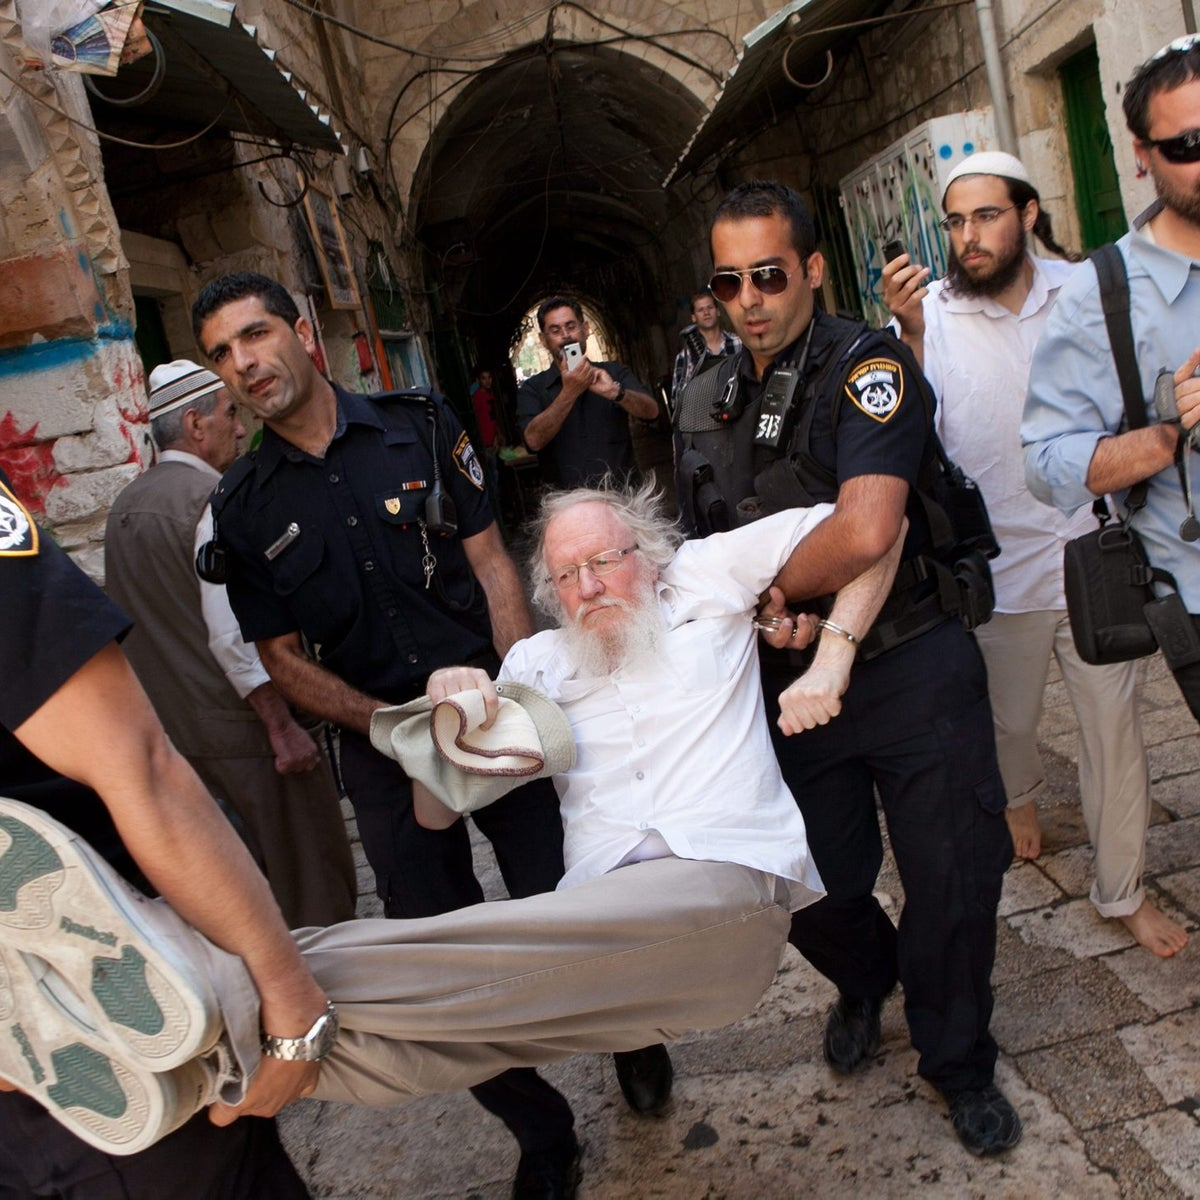 Police in Jerusalem arrest extreme right-wing activist Yehuda Etzion, a former Jewish Underground member, after he violated the ban on Jews praying on the Temple Mount.